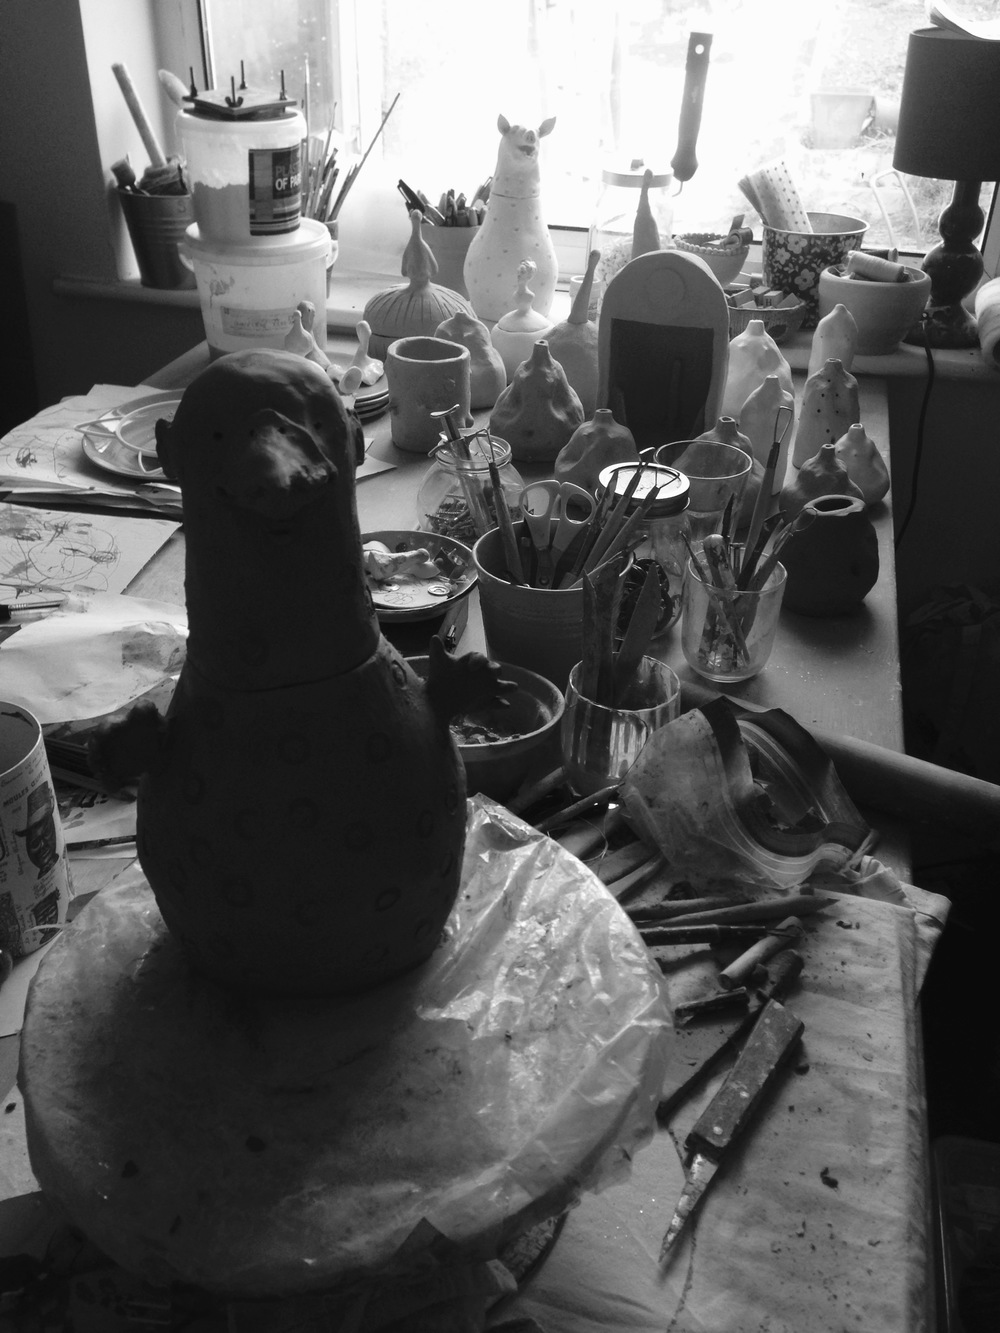 My rather messy studio with Monsieur Oiseau